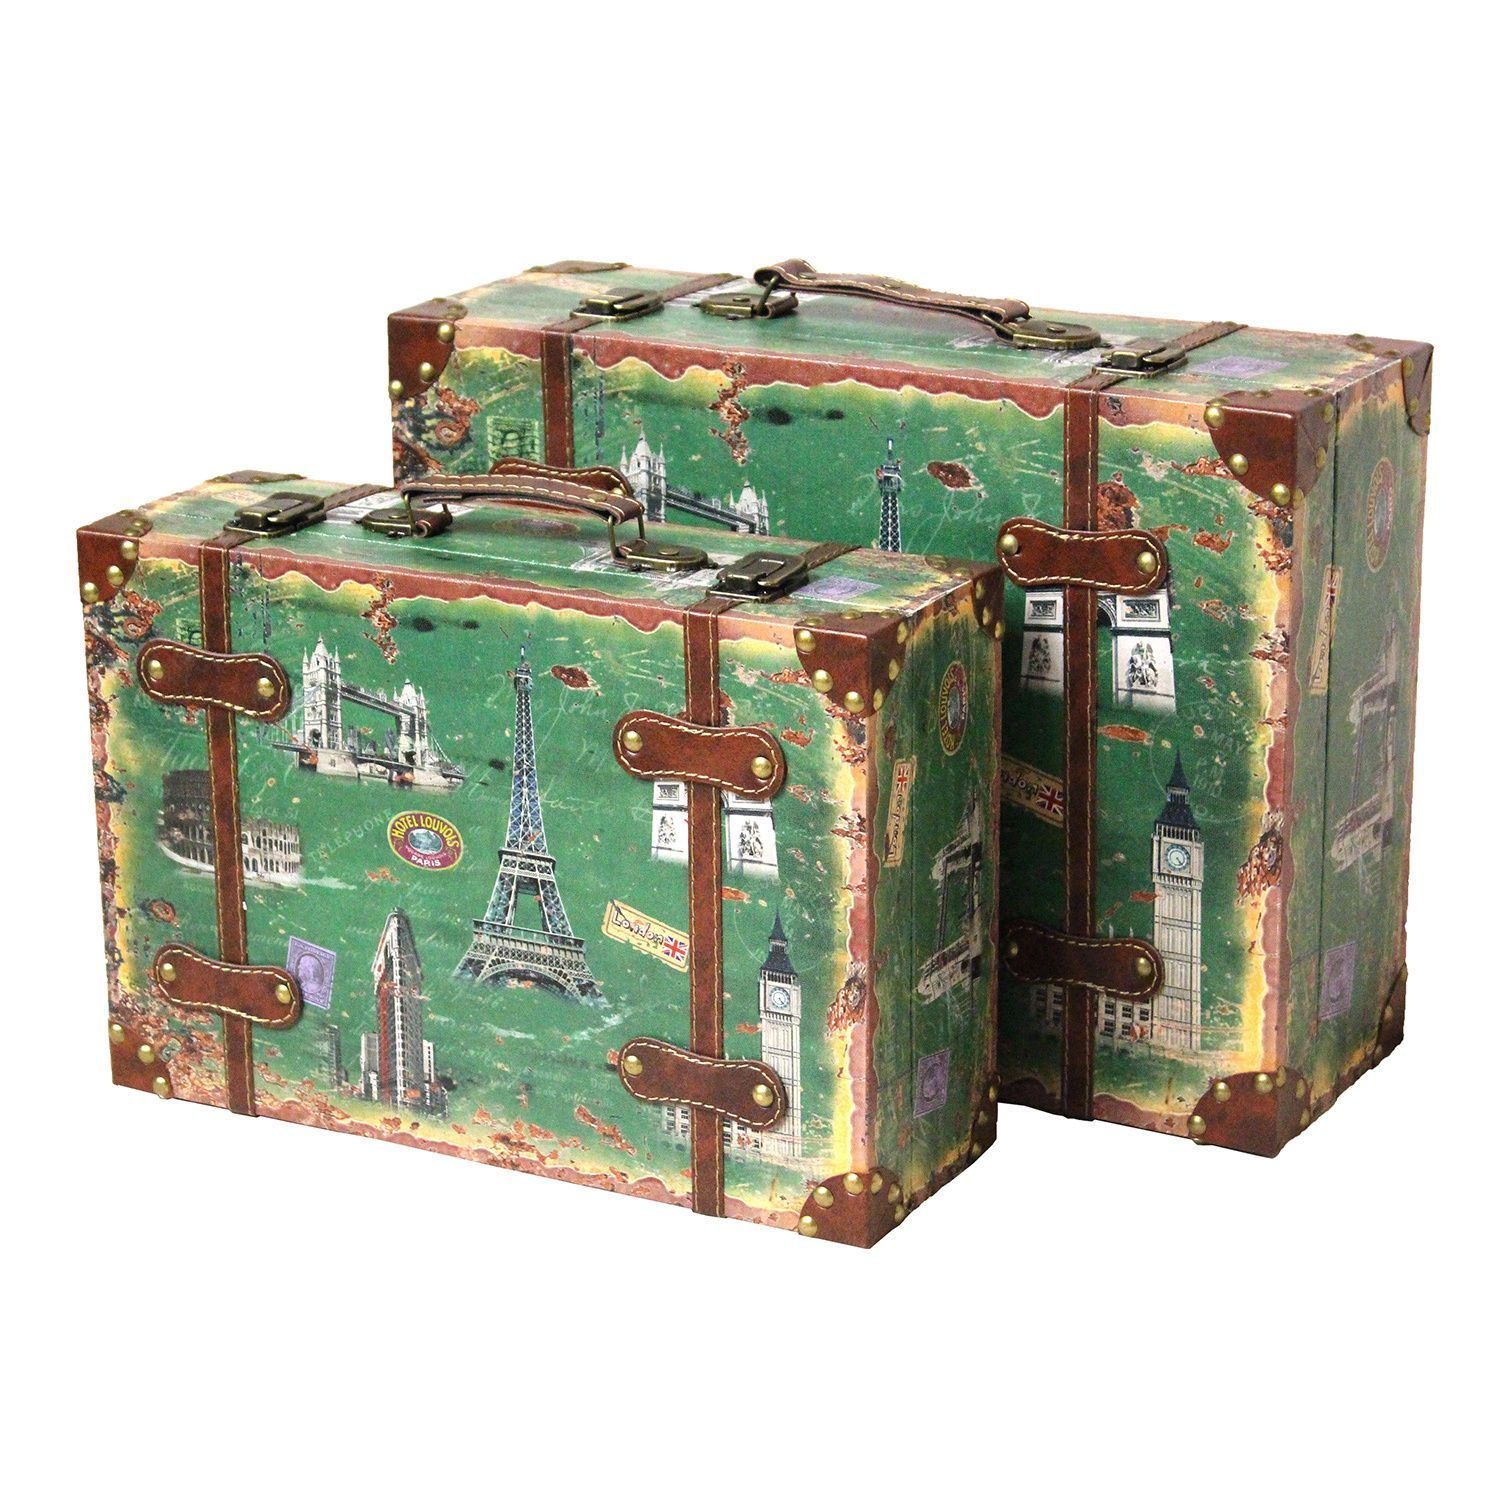 Luggage Style Furniture: Enhance The Look Of Any Space With The Vintage Style